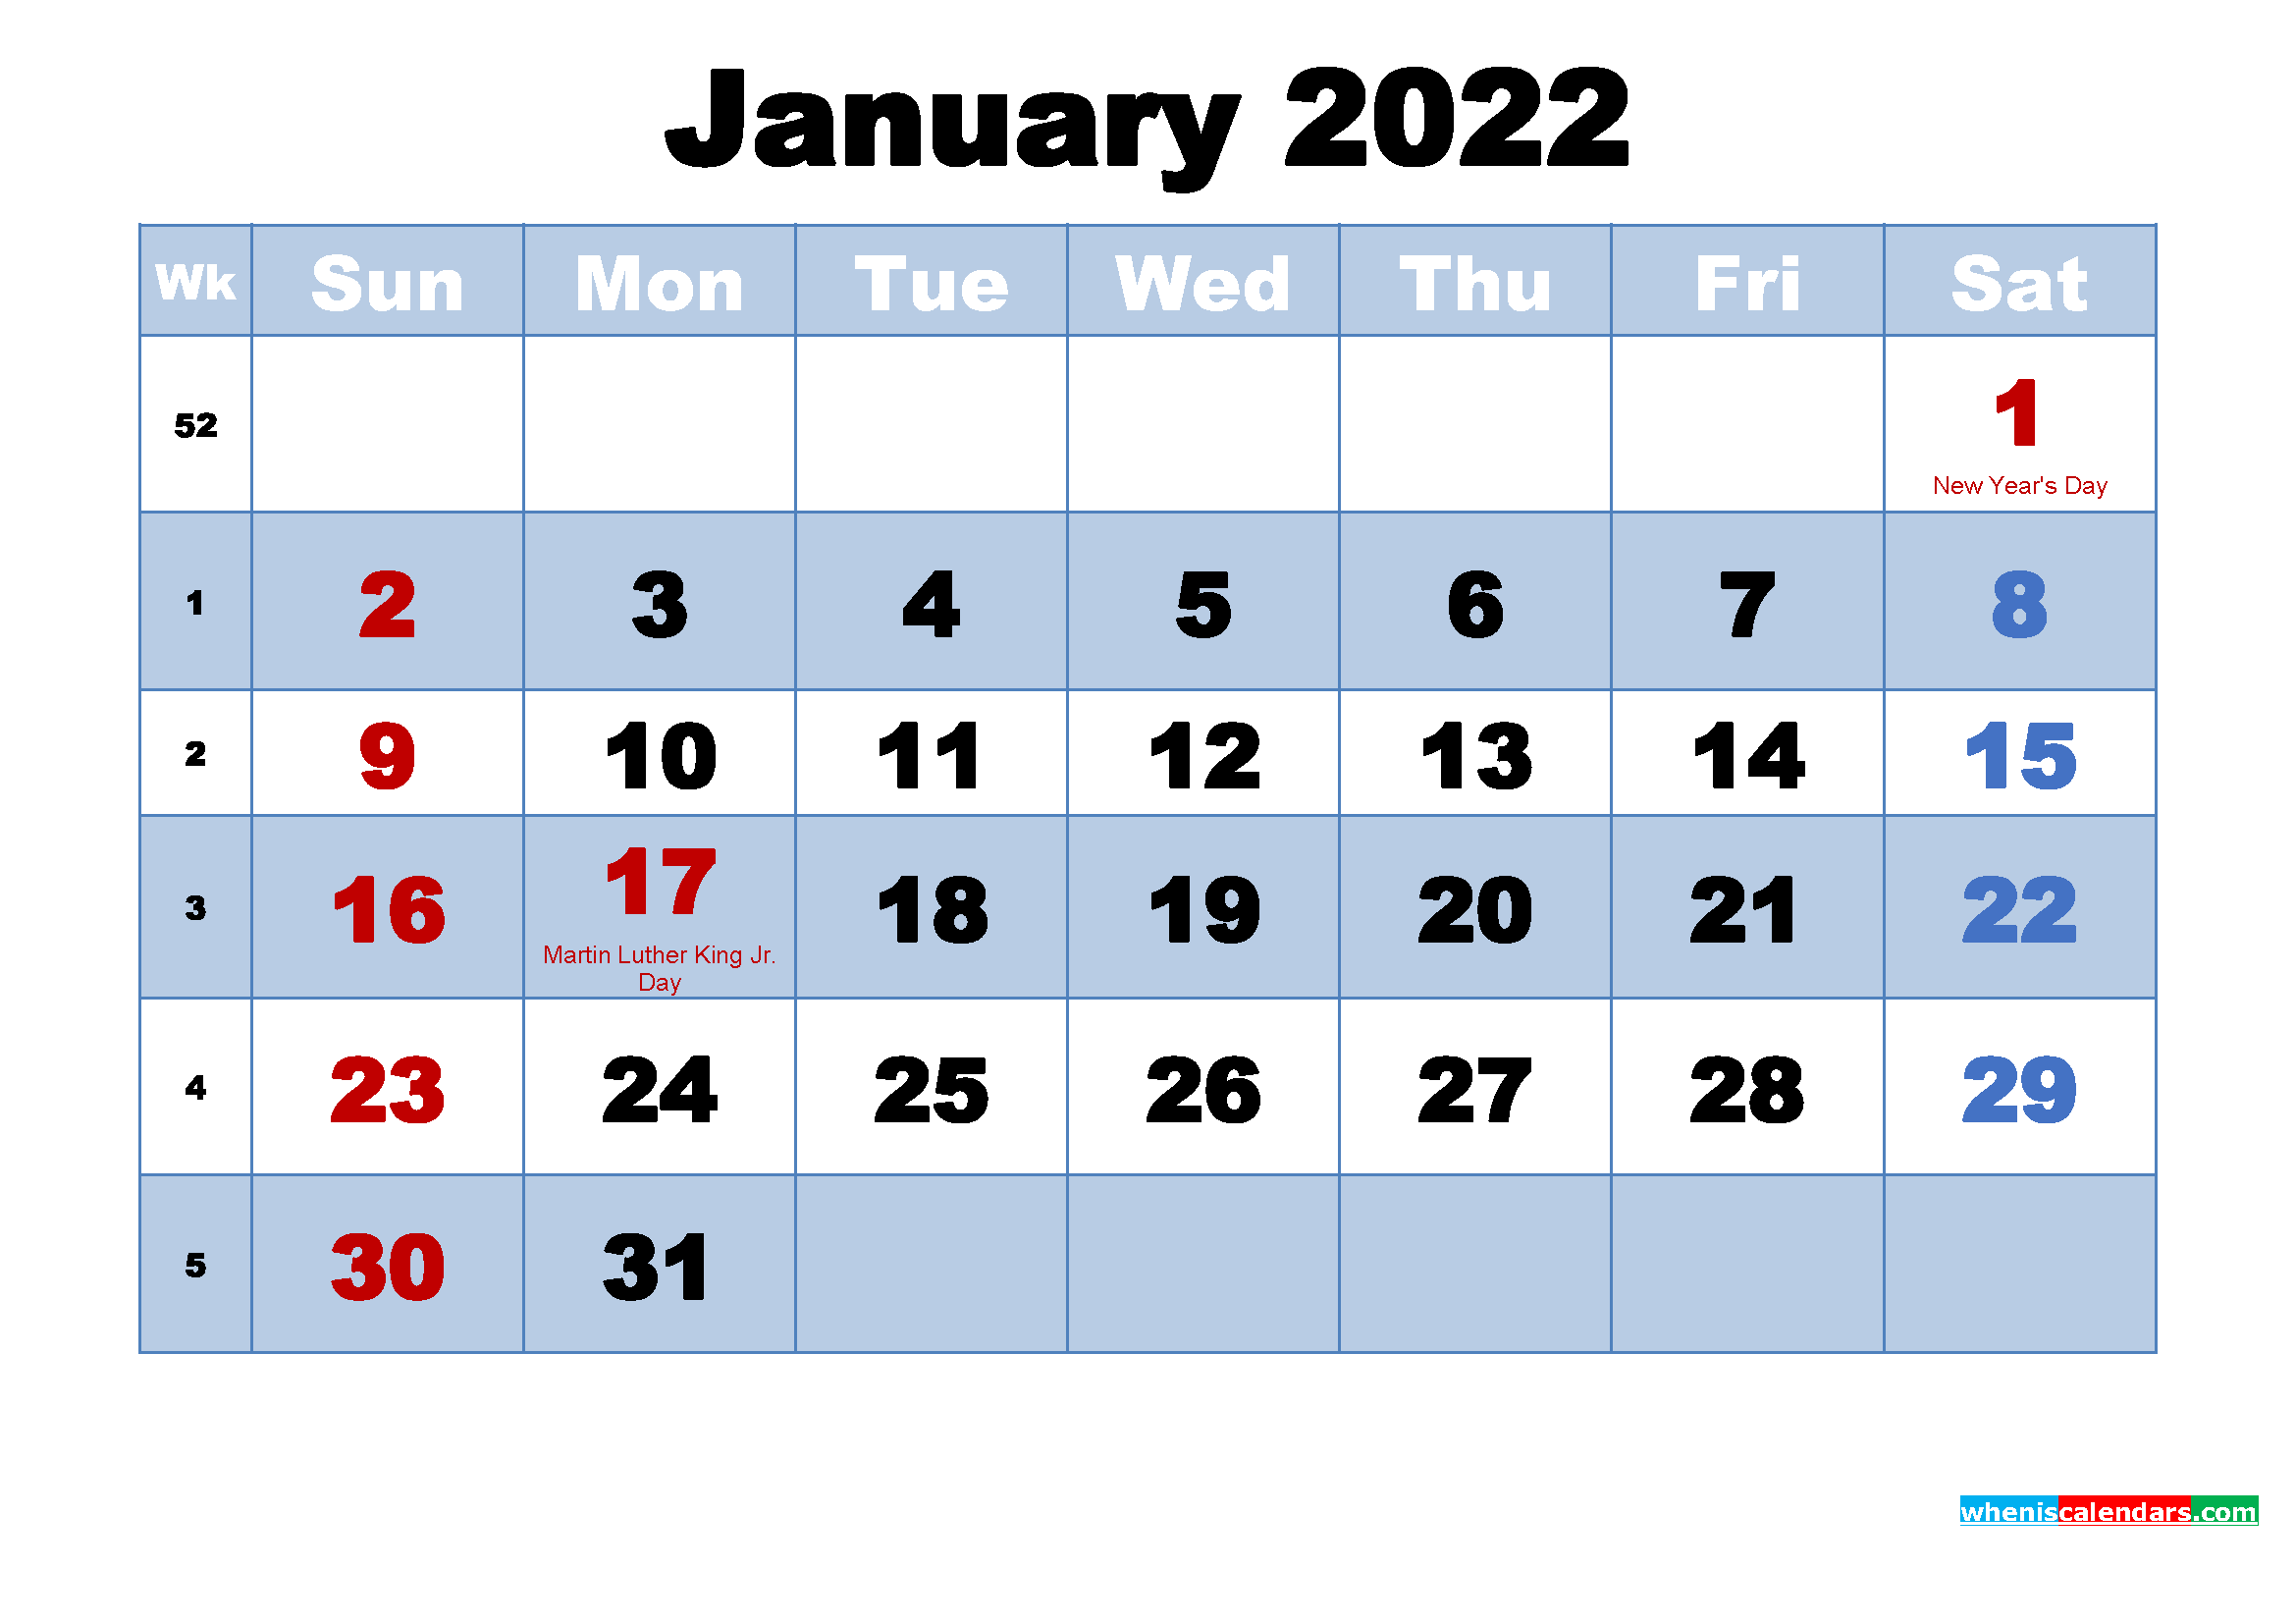 Free Printable 2022 Calendar January as Word, PDF